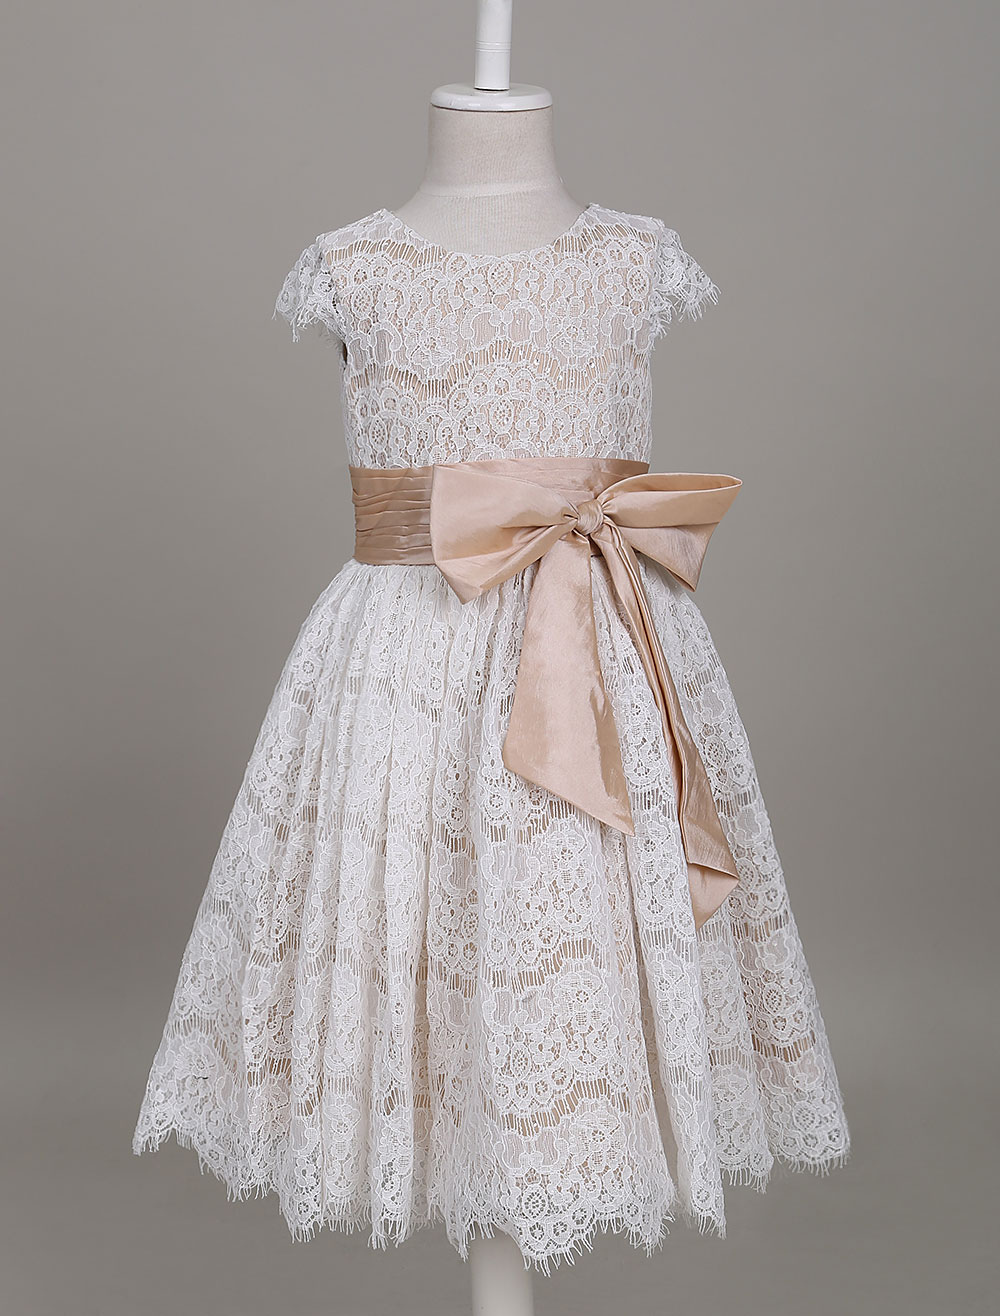 Flower Girl Dresses Lace Champagne Short Sleeve Bow Sash A Line Formal Party Dress For Girls